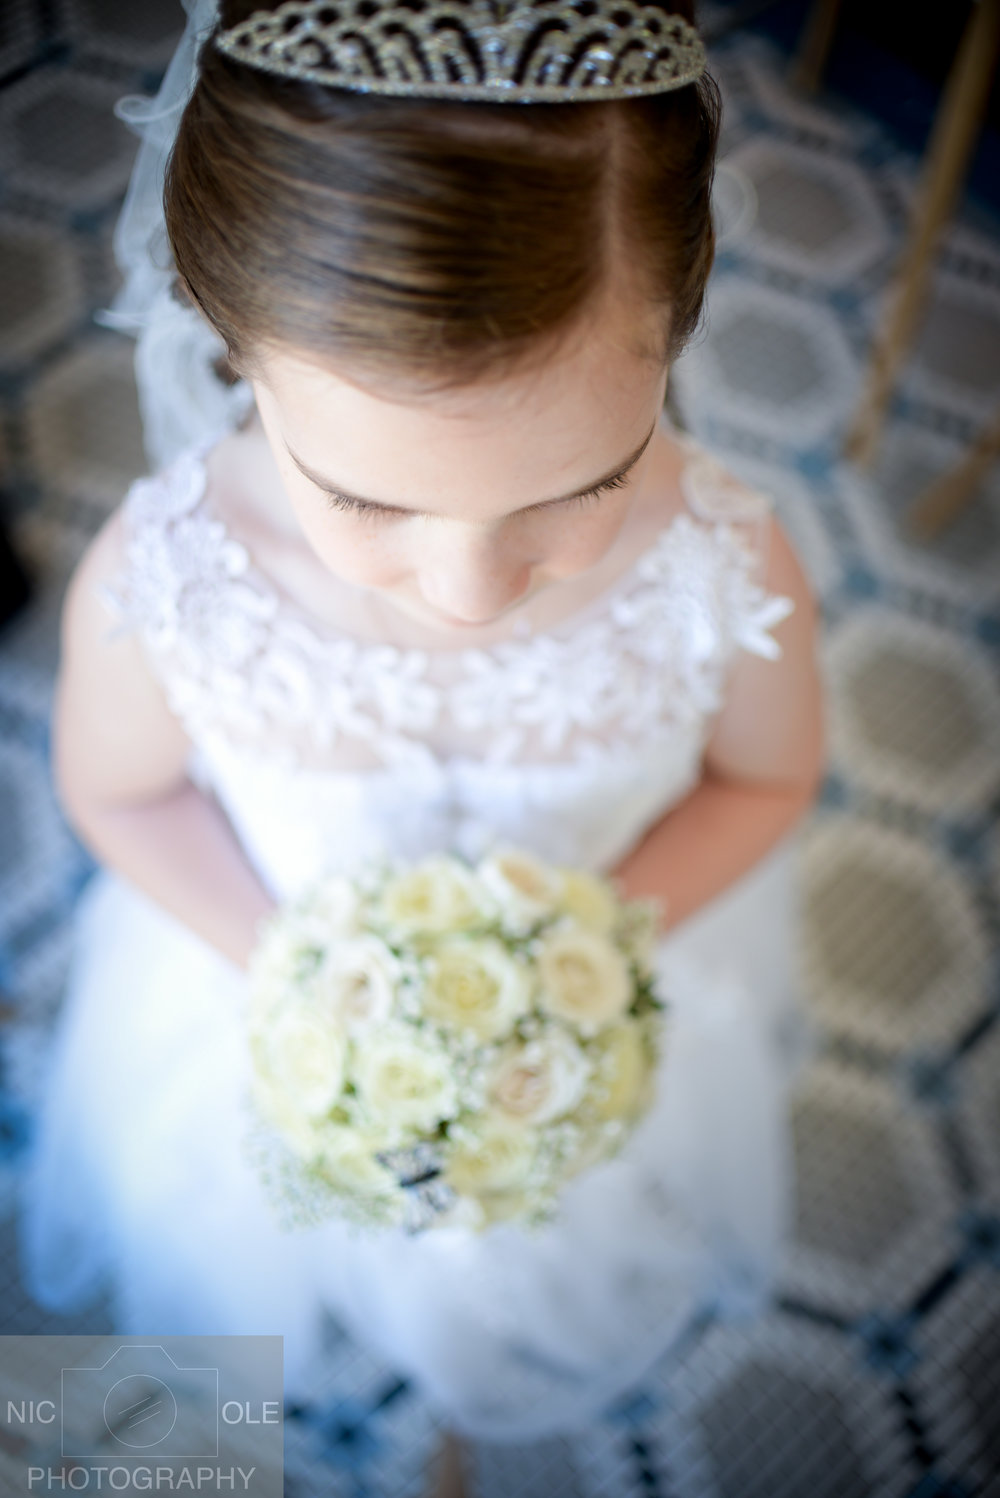 Ava's Communion 2017-NIC-OLE Photography-14.jpg